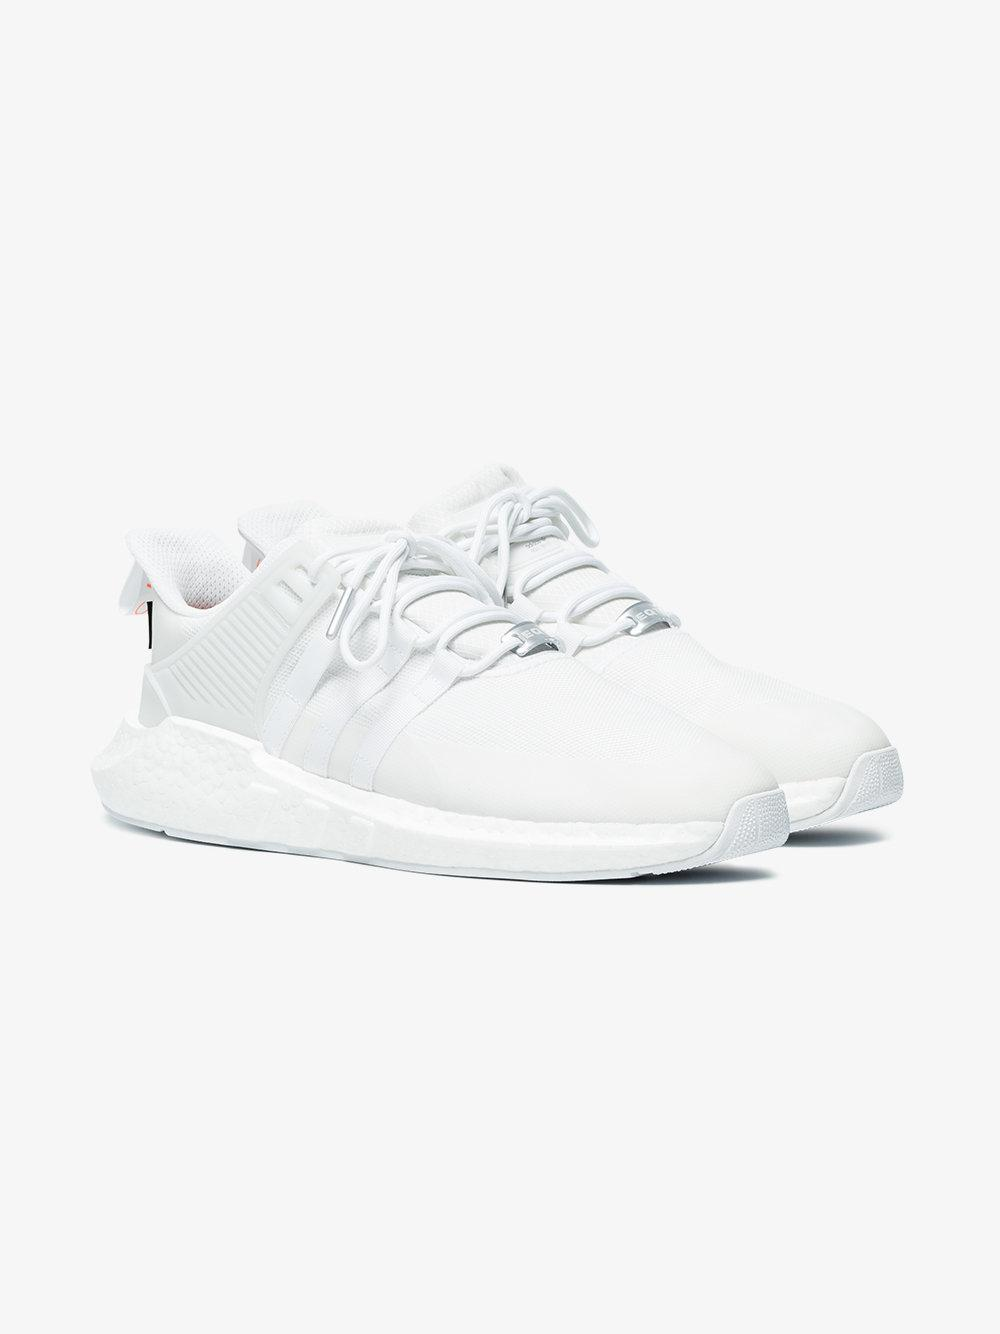 low priced 3a584 06637 adidas. Mens White Eqt Support ...